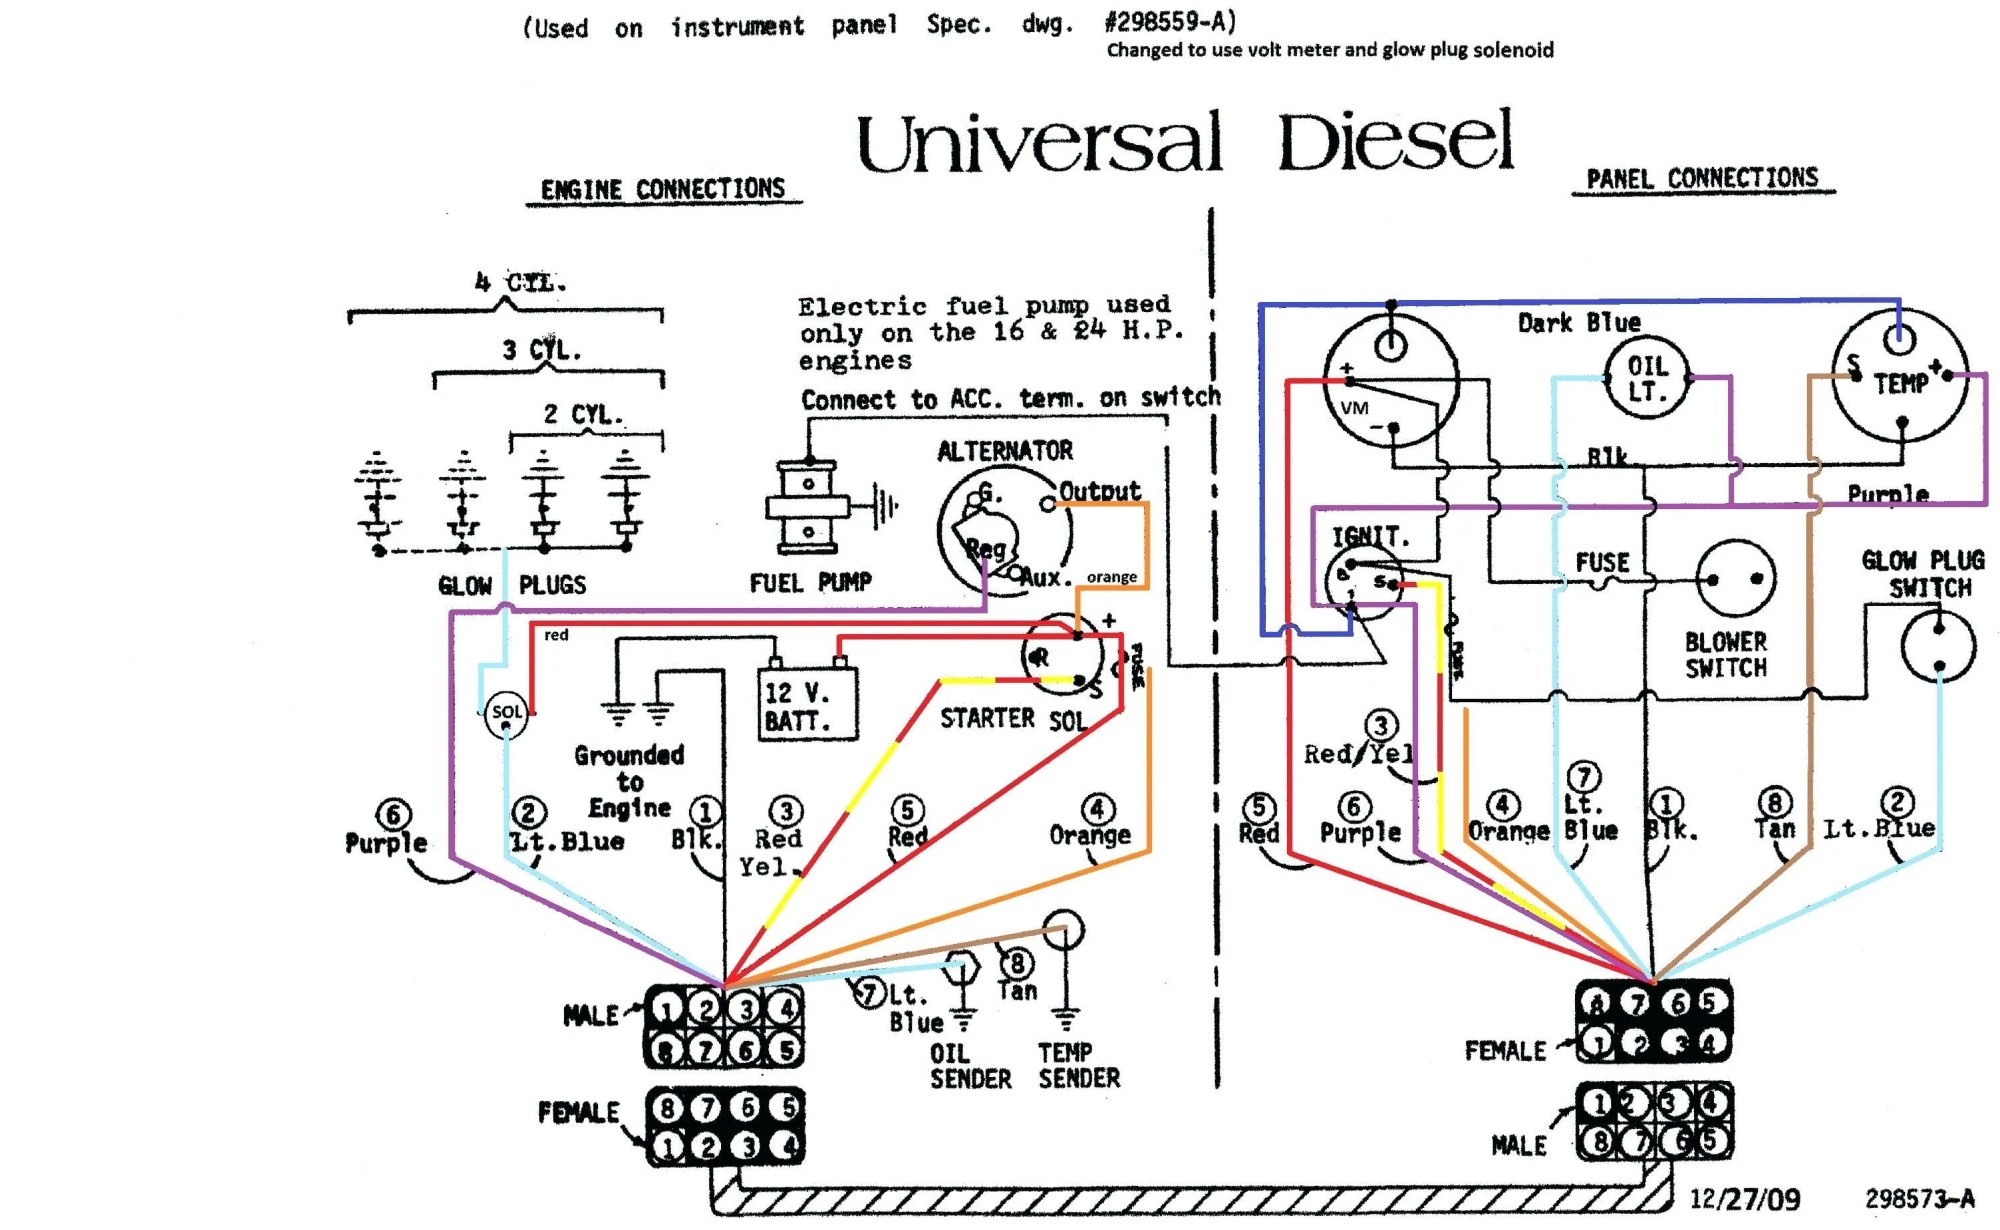 hight resolution of 1979 ford 302 alternator wiring diagram wiring library ford electronic ignition wiring diagram late model ford 302 alternator wiring diagram